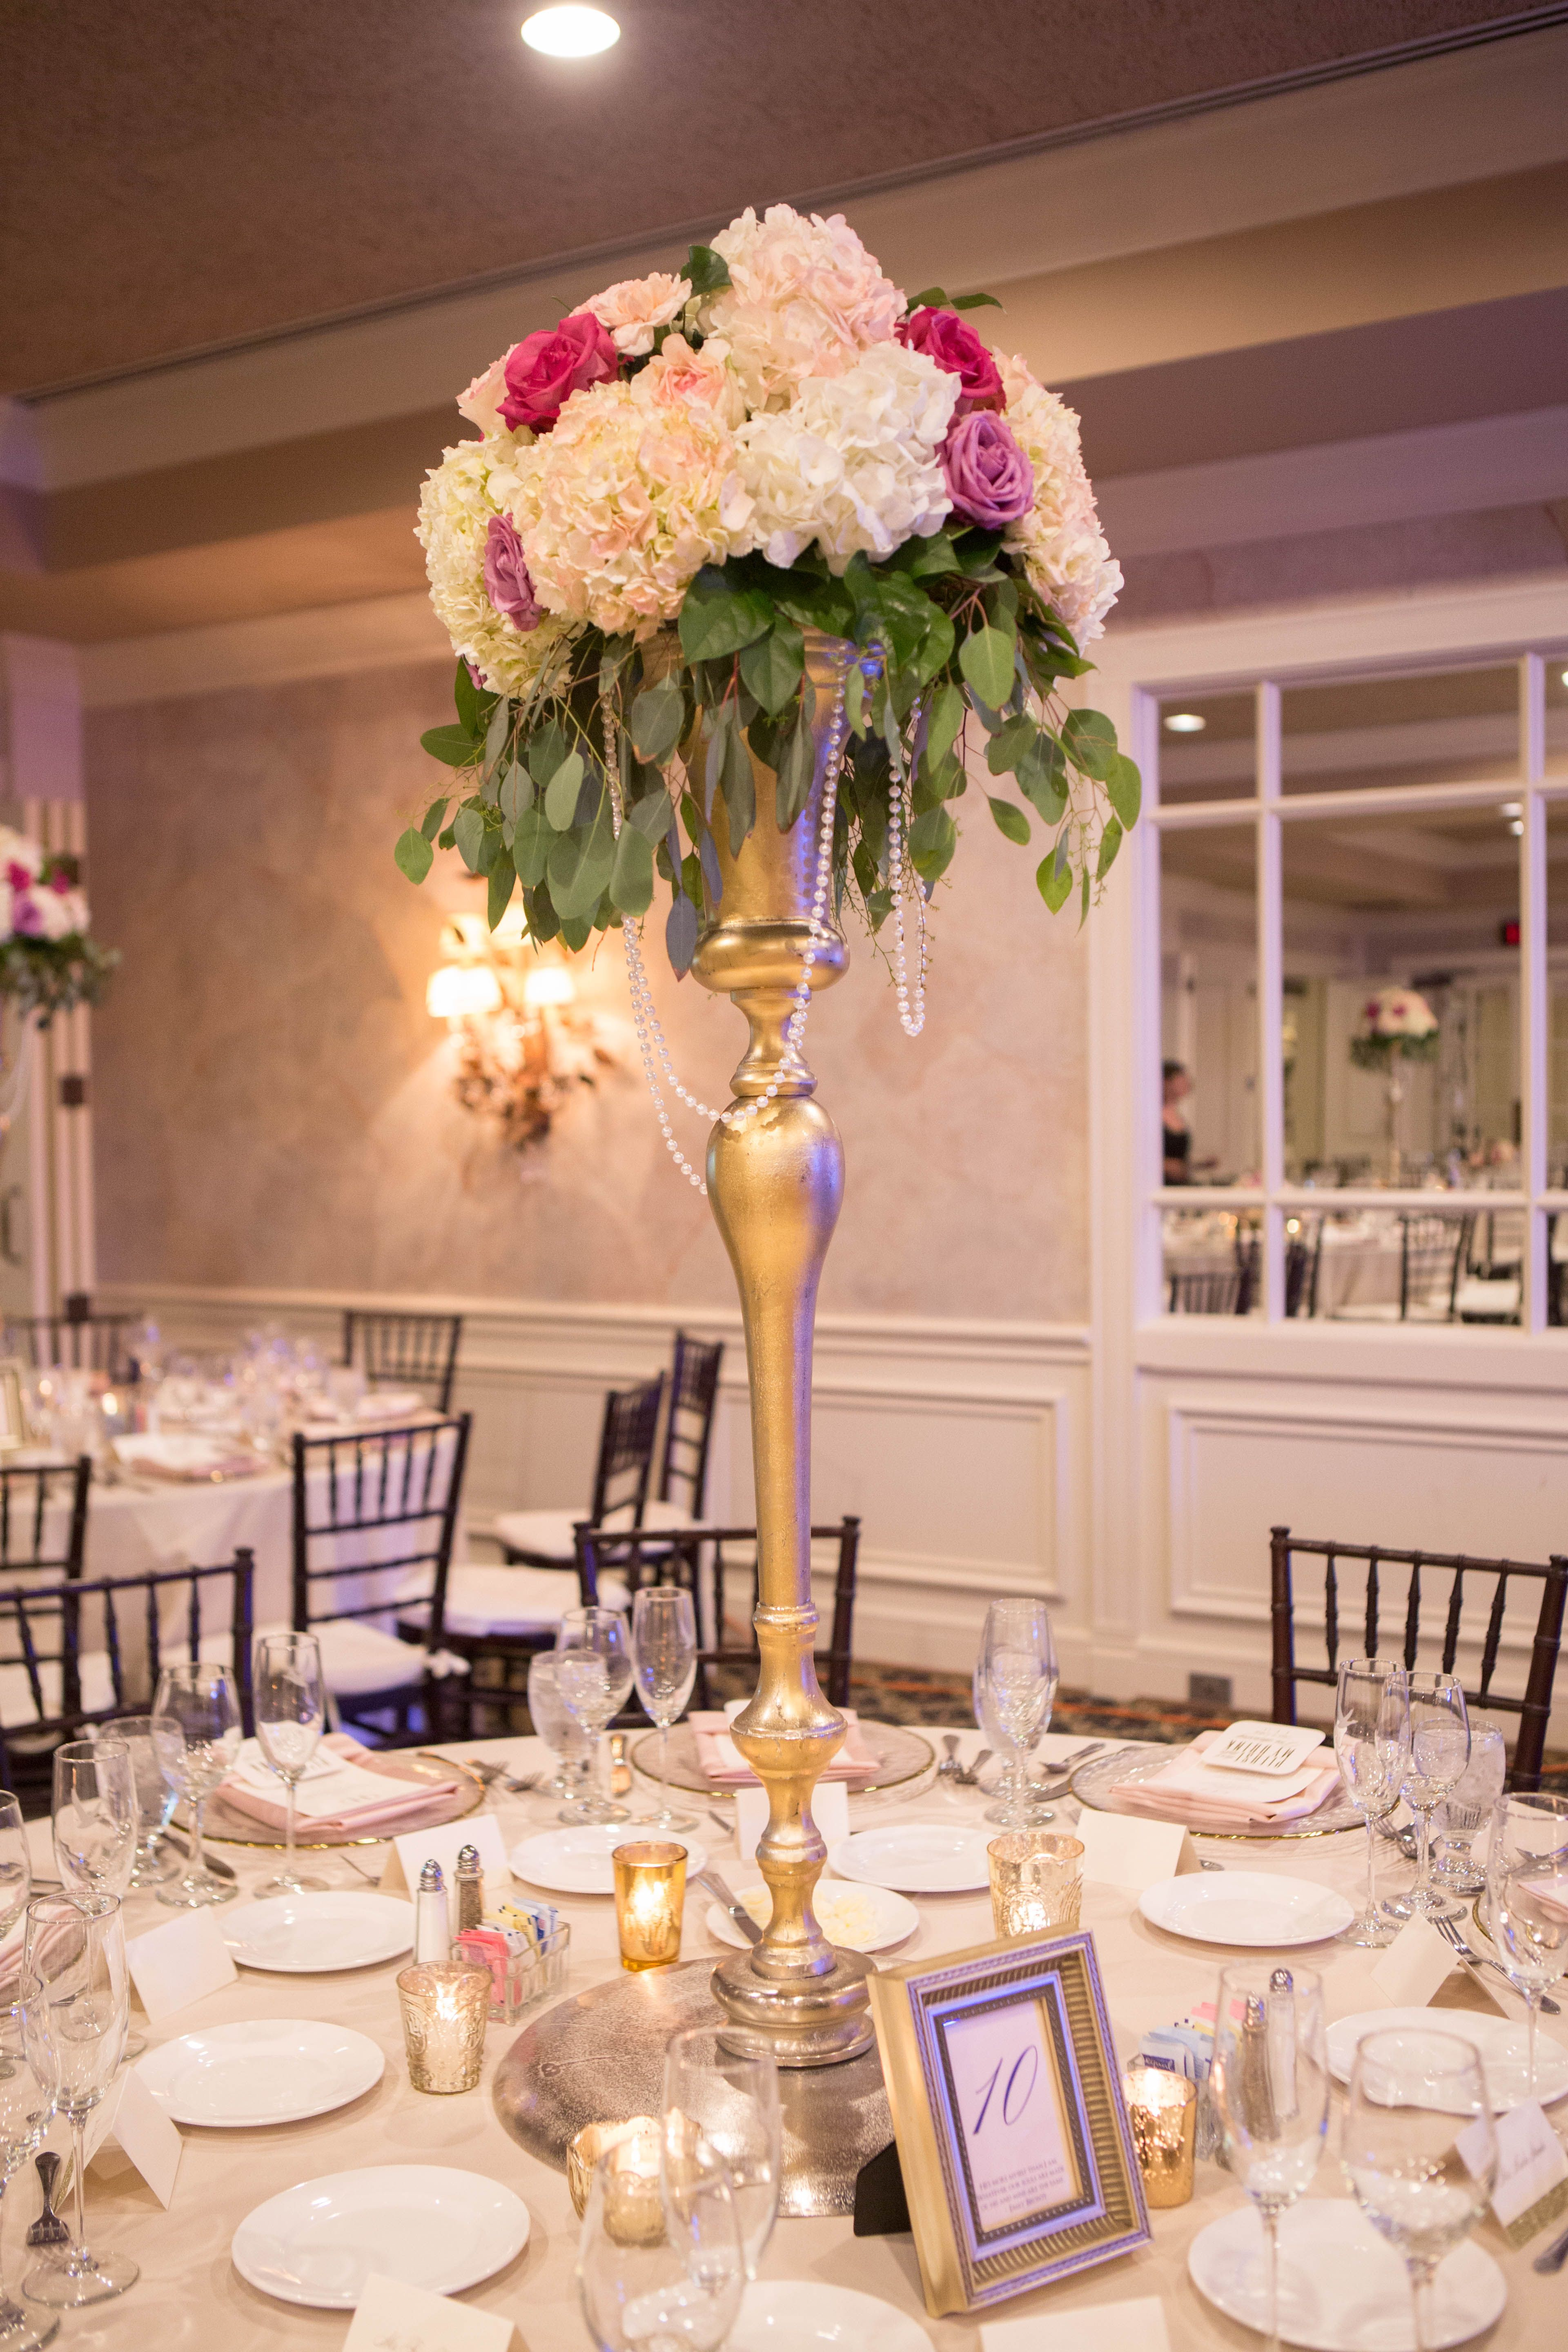 Tall Gold Centerpiece With Pink and Ivory Flower Arrangement